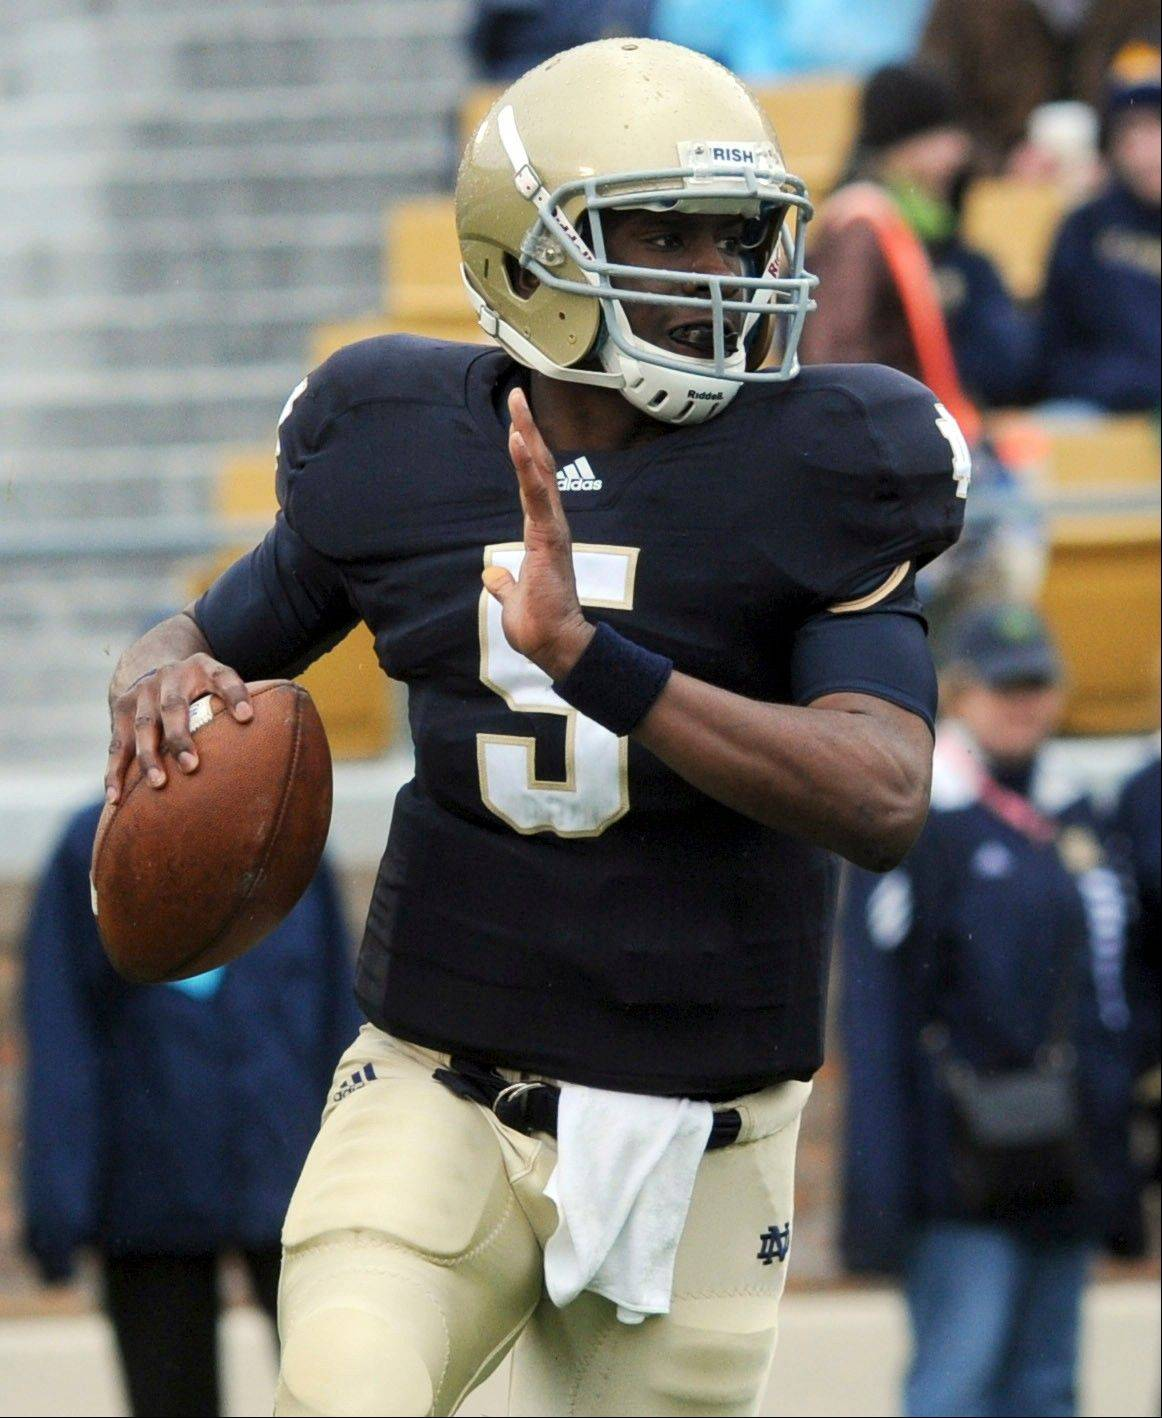 Notre Dame quarterback Everett Golson left high school early to come to Notre Dame and find his way in a spread offense that would seem to be a match for running and passing skills.